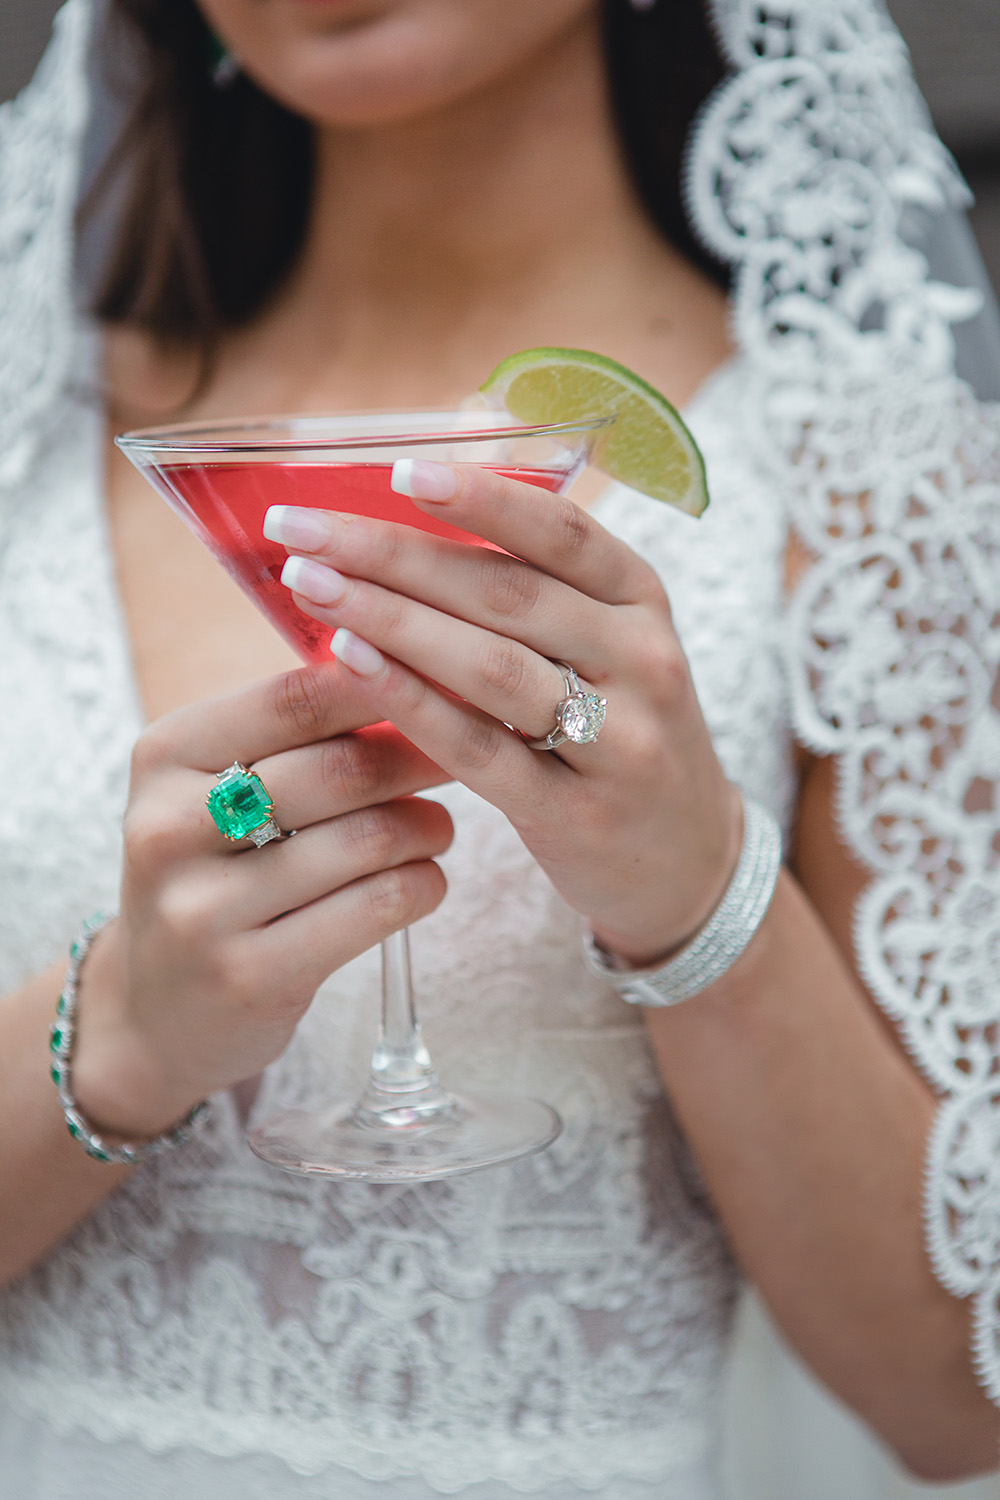 Our bride dons her gorgeous emerald and diamond wedding jewelry while holding a pink cocktail with a lime sliver.